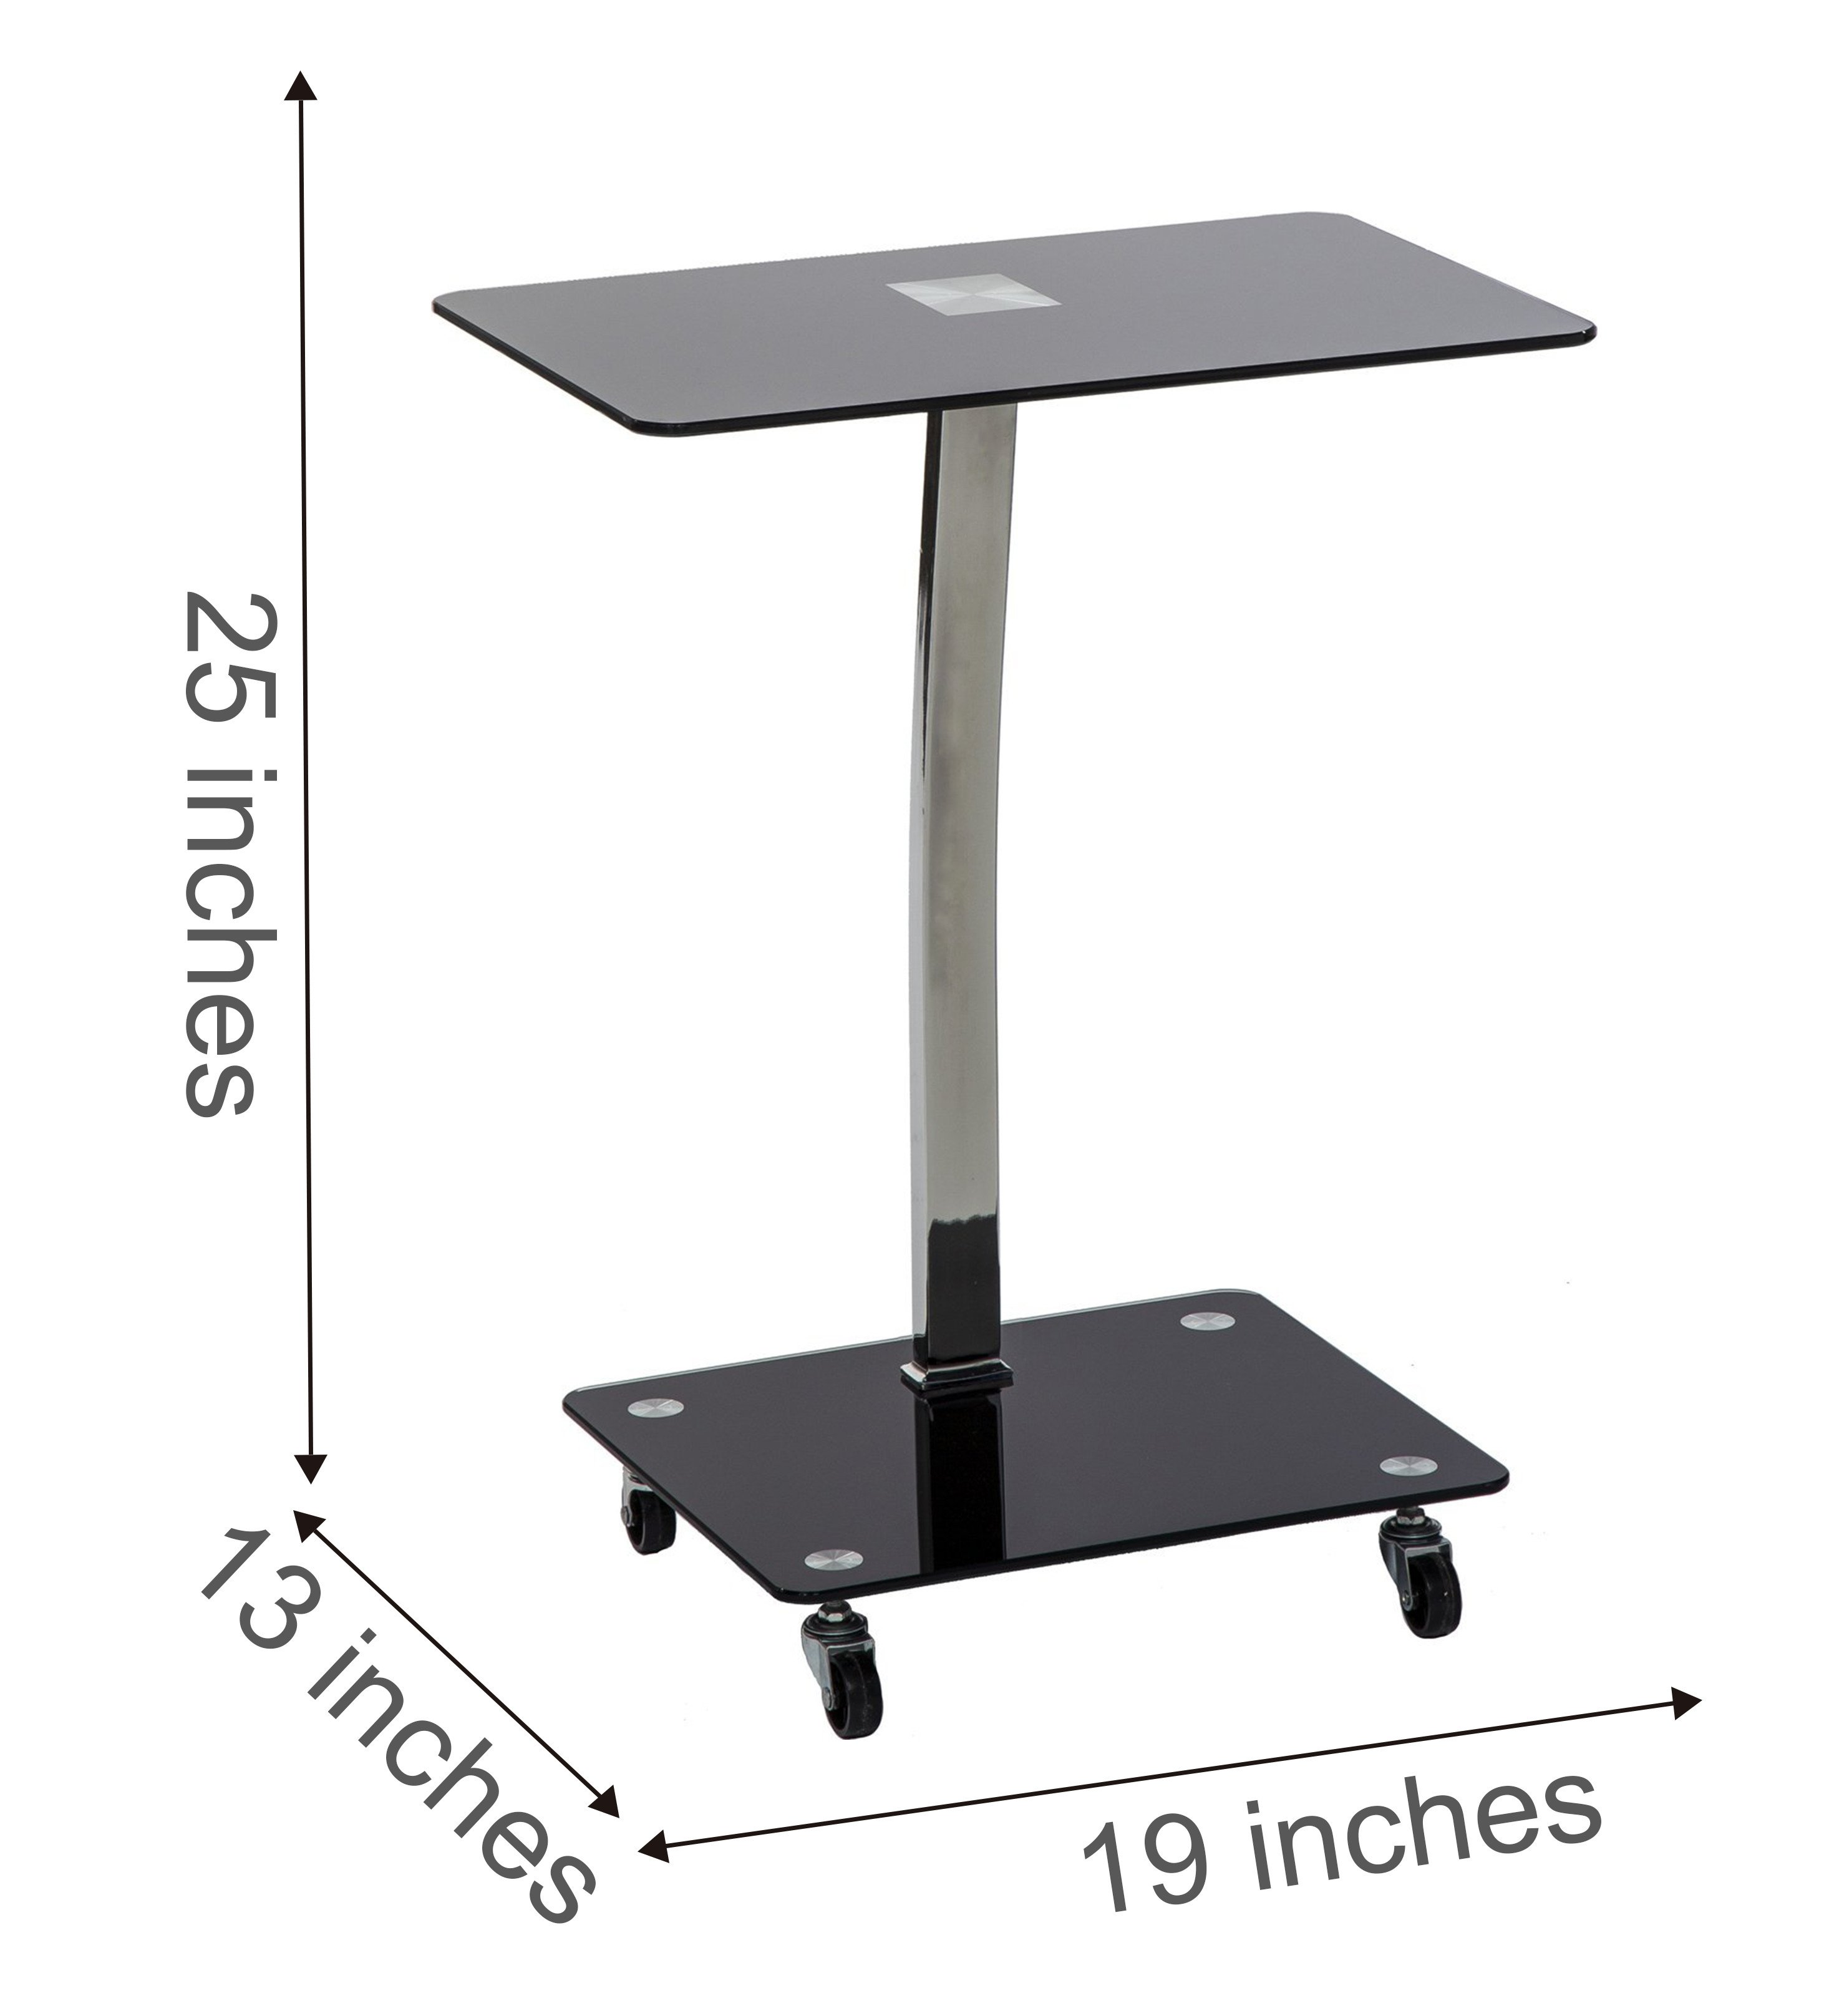 mango steam alameda portable wheeled tempered glass laptop desk accent untitled table with wheels black and chrome elm console kitchen remodel small white entry round nest tables